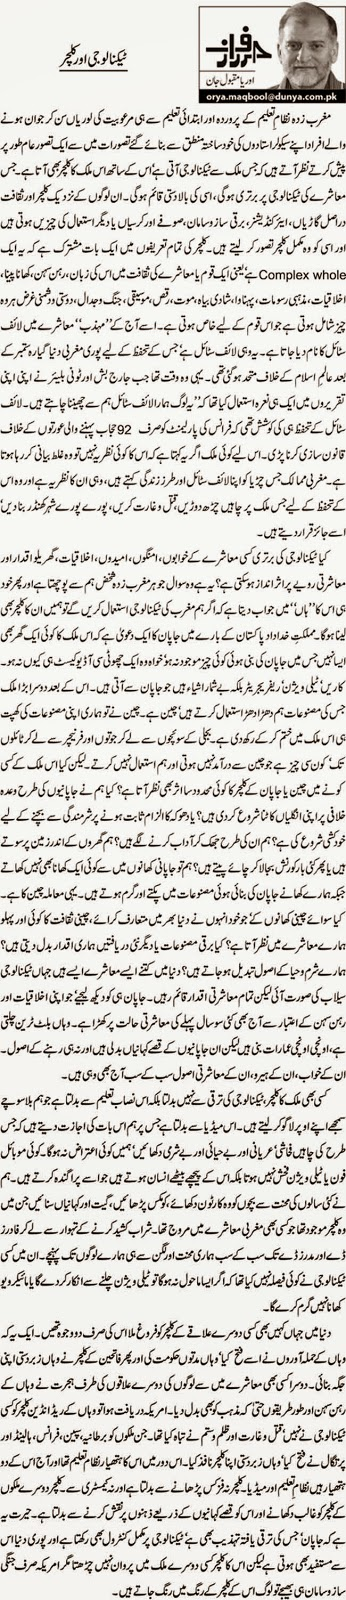 Technology aur Culture by By Orya Maqbool Jan